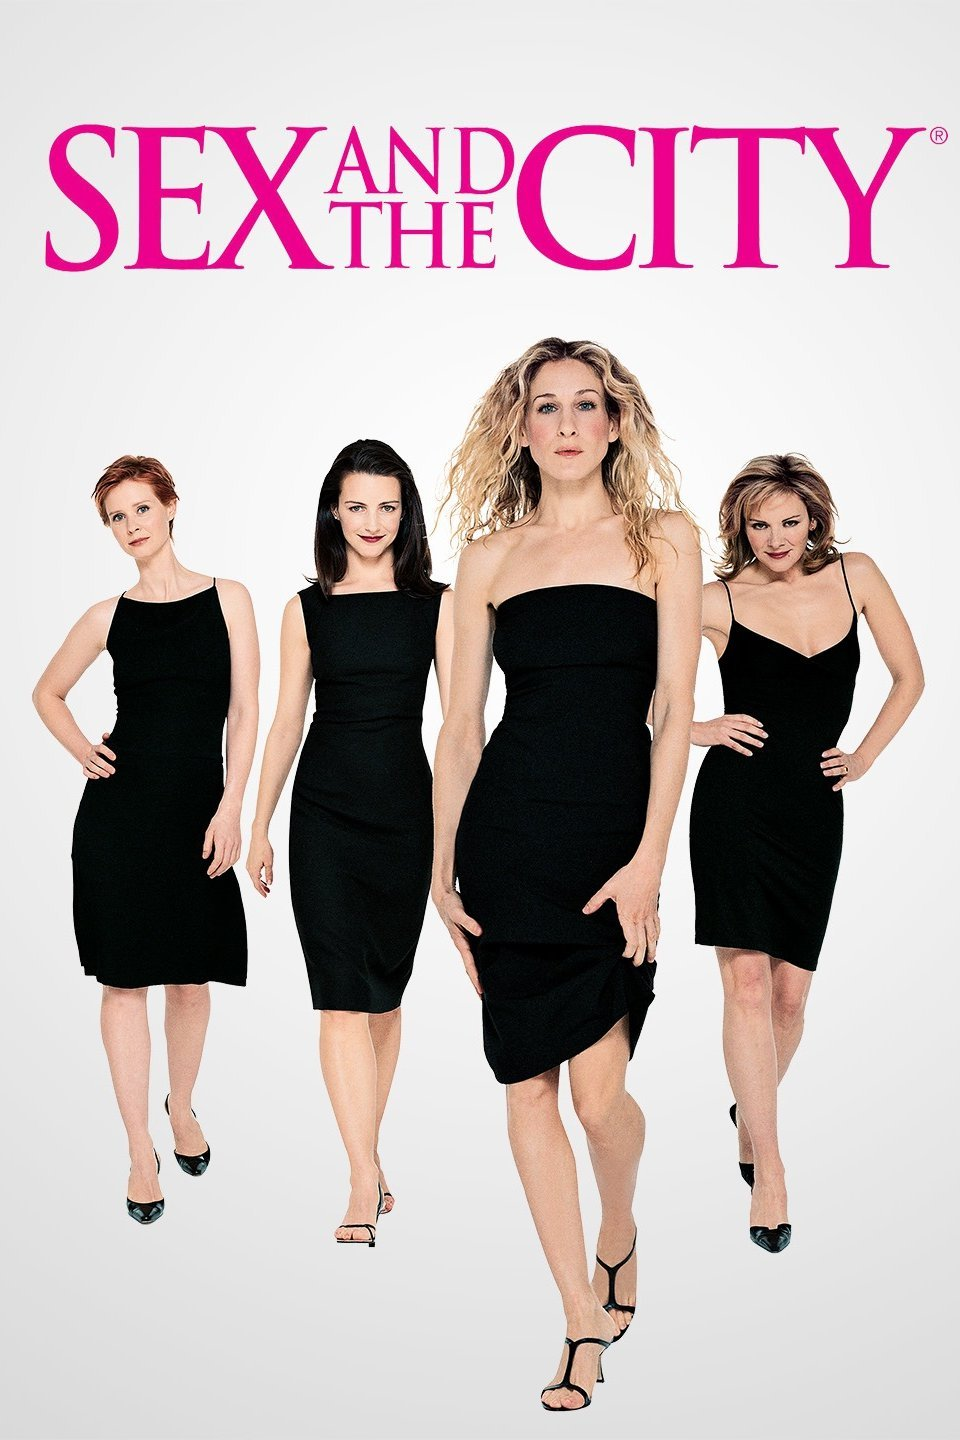 Sex and the city by